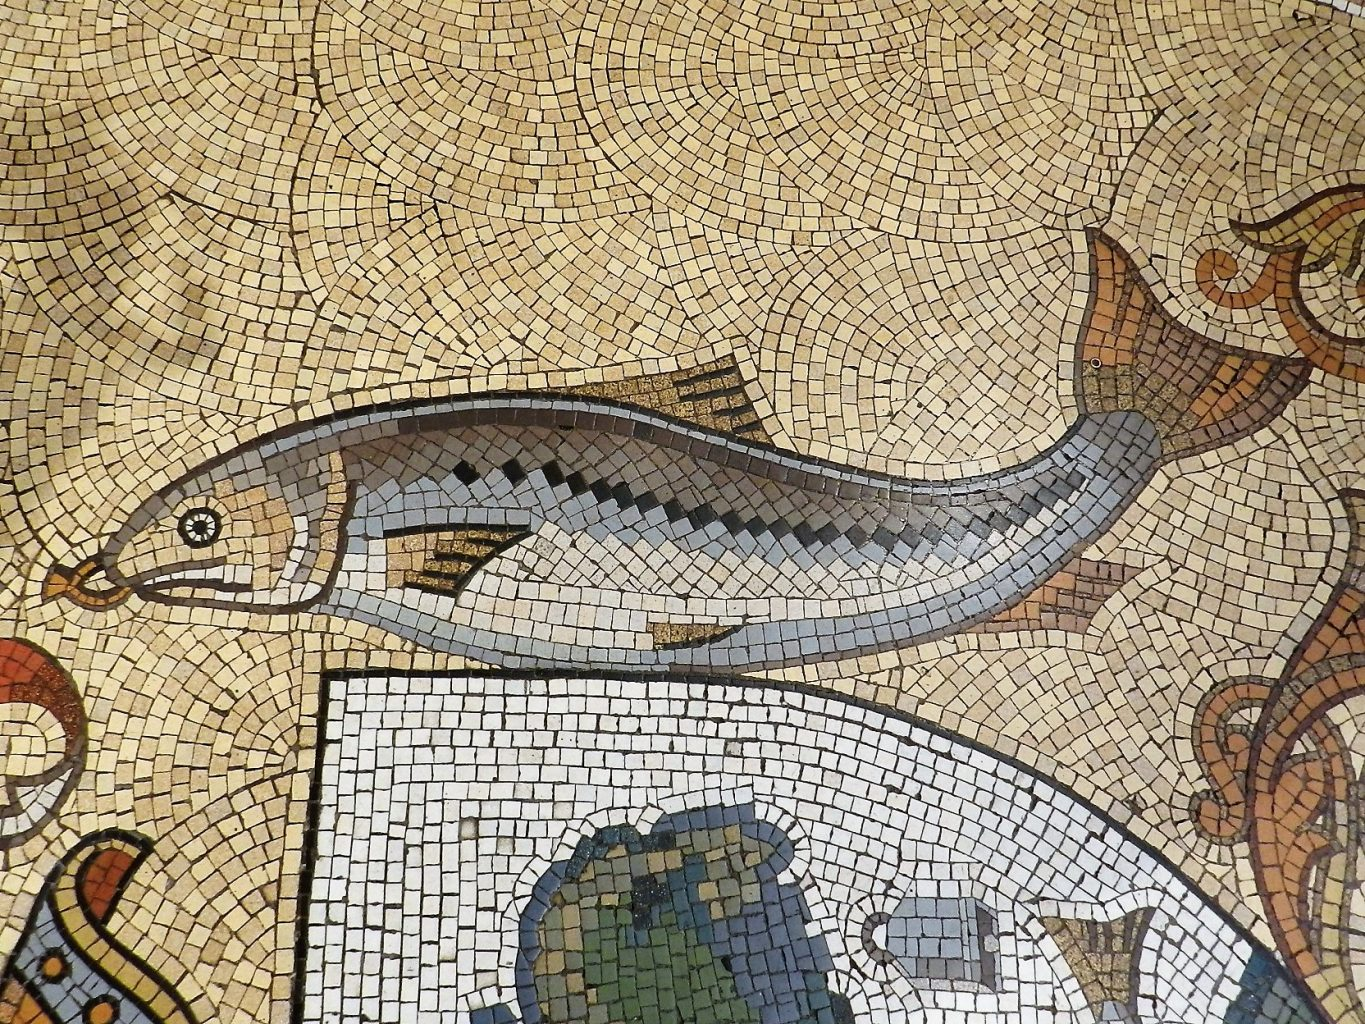 Glasgow City Chambers mosaic, fish detail. Mosaics of Scotland